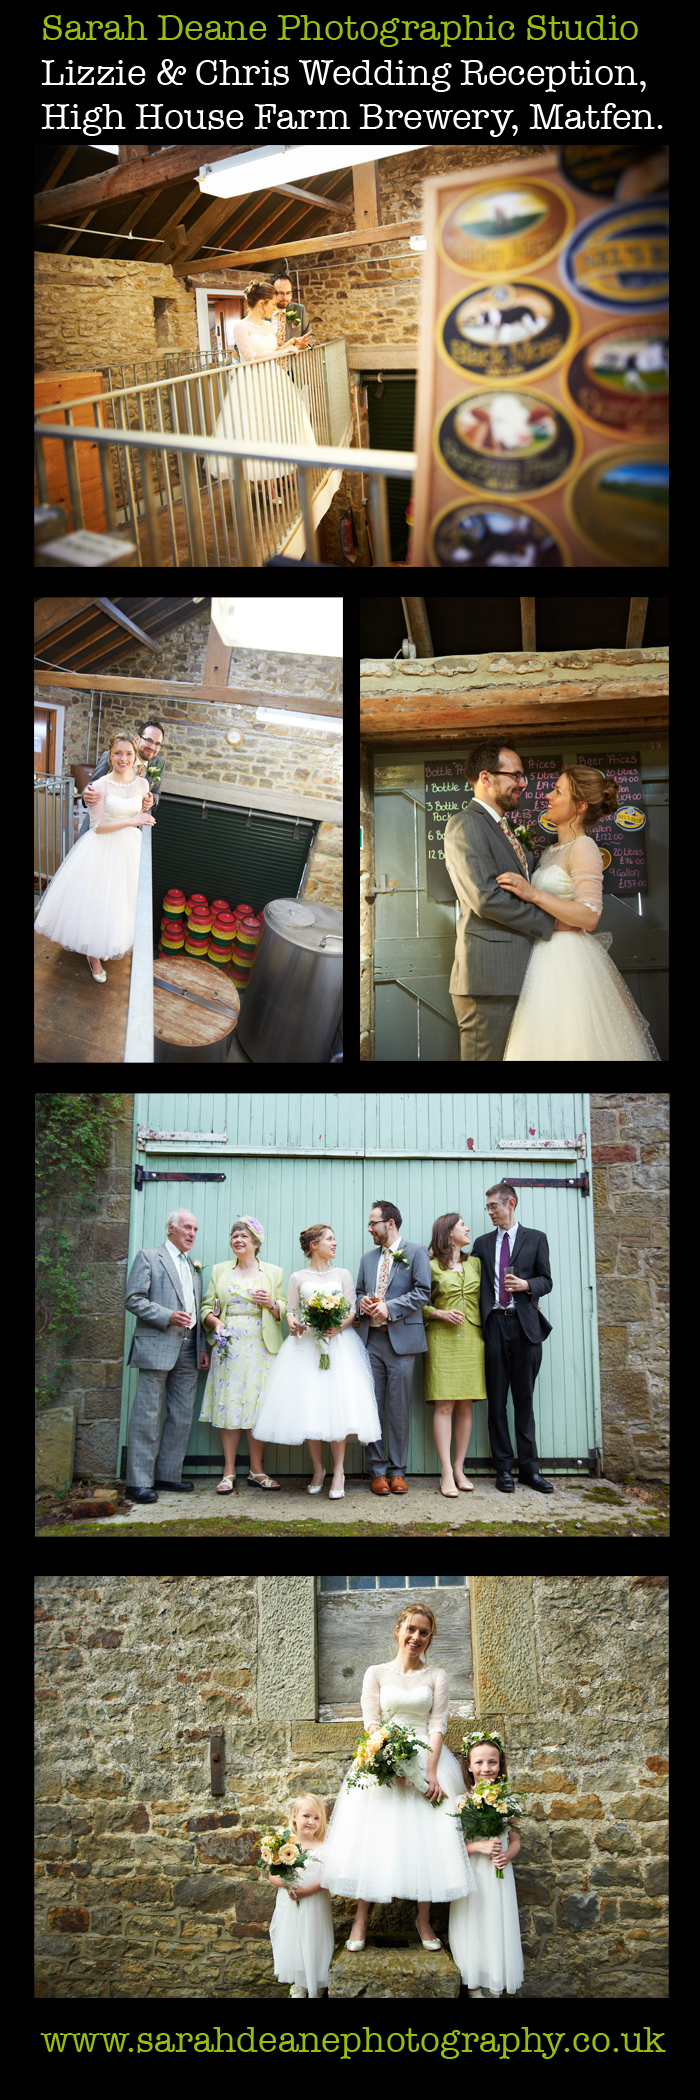 lizzie and chris wedding photos at reception, high house farm, matfen northumberland